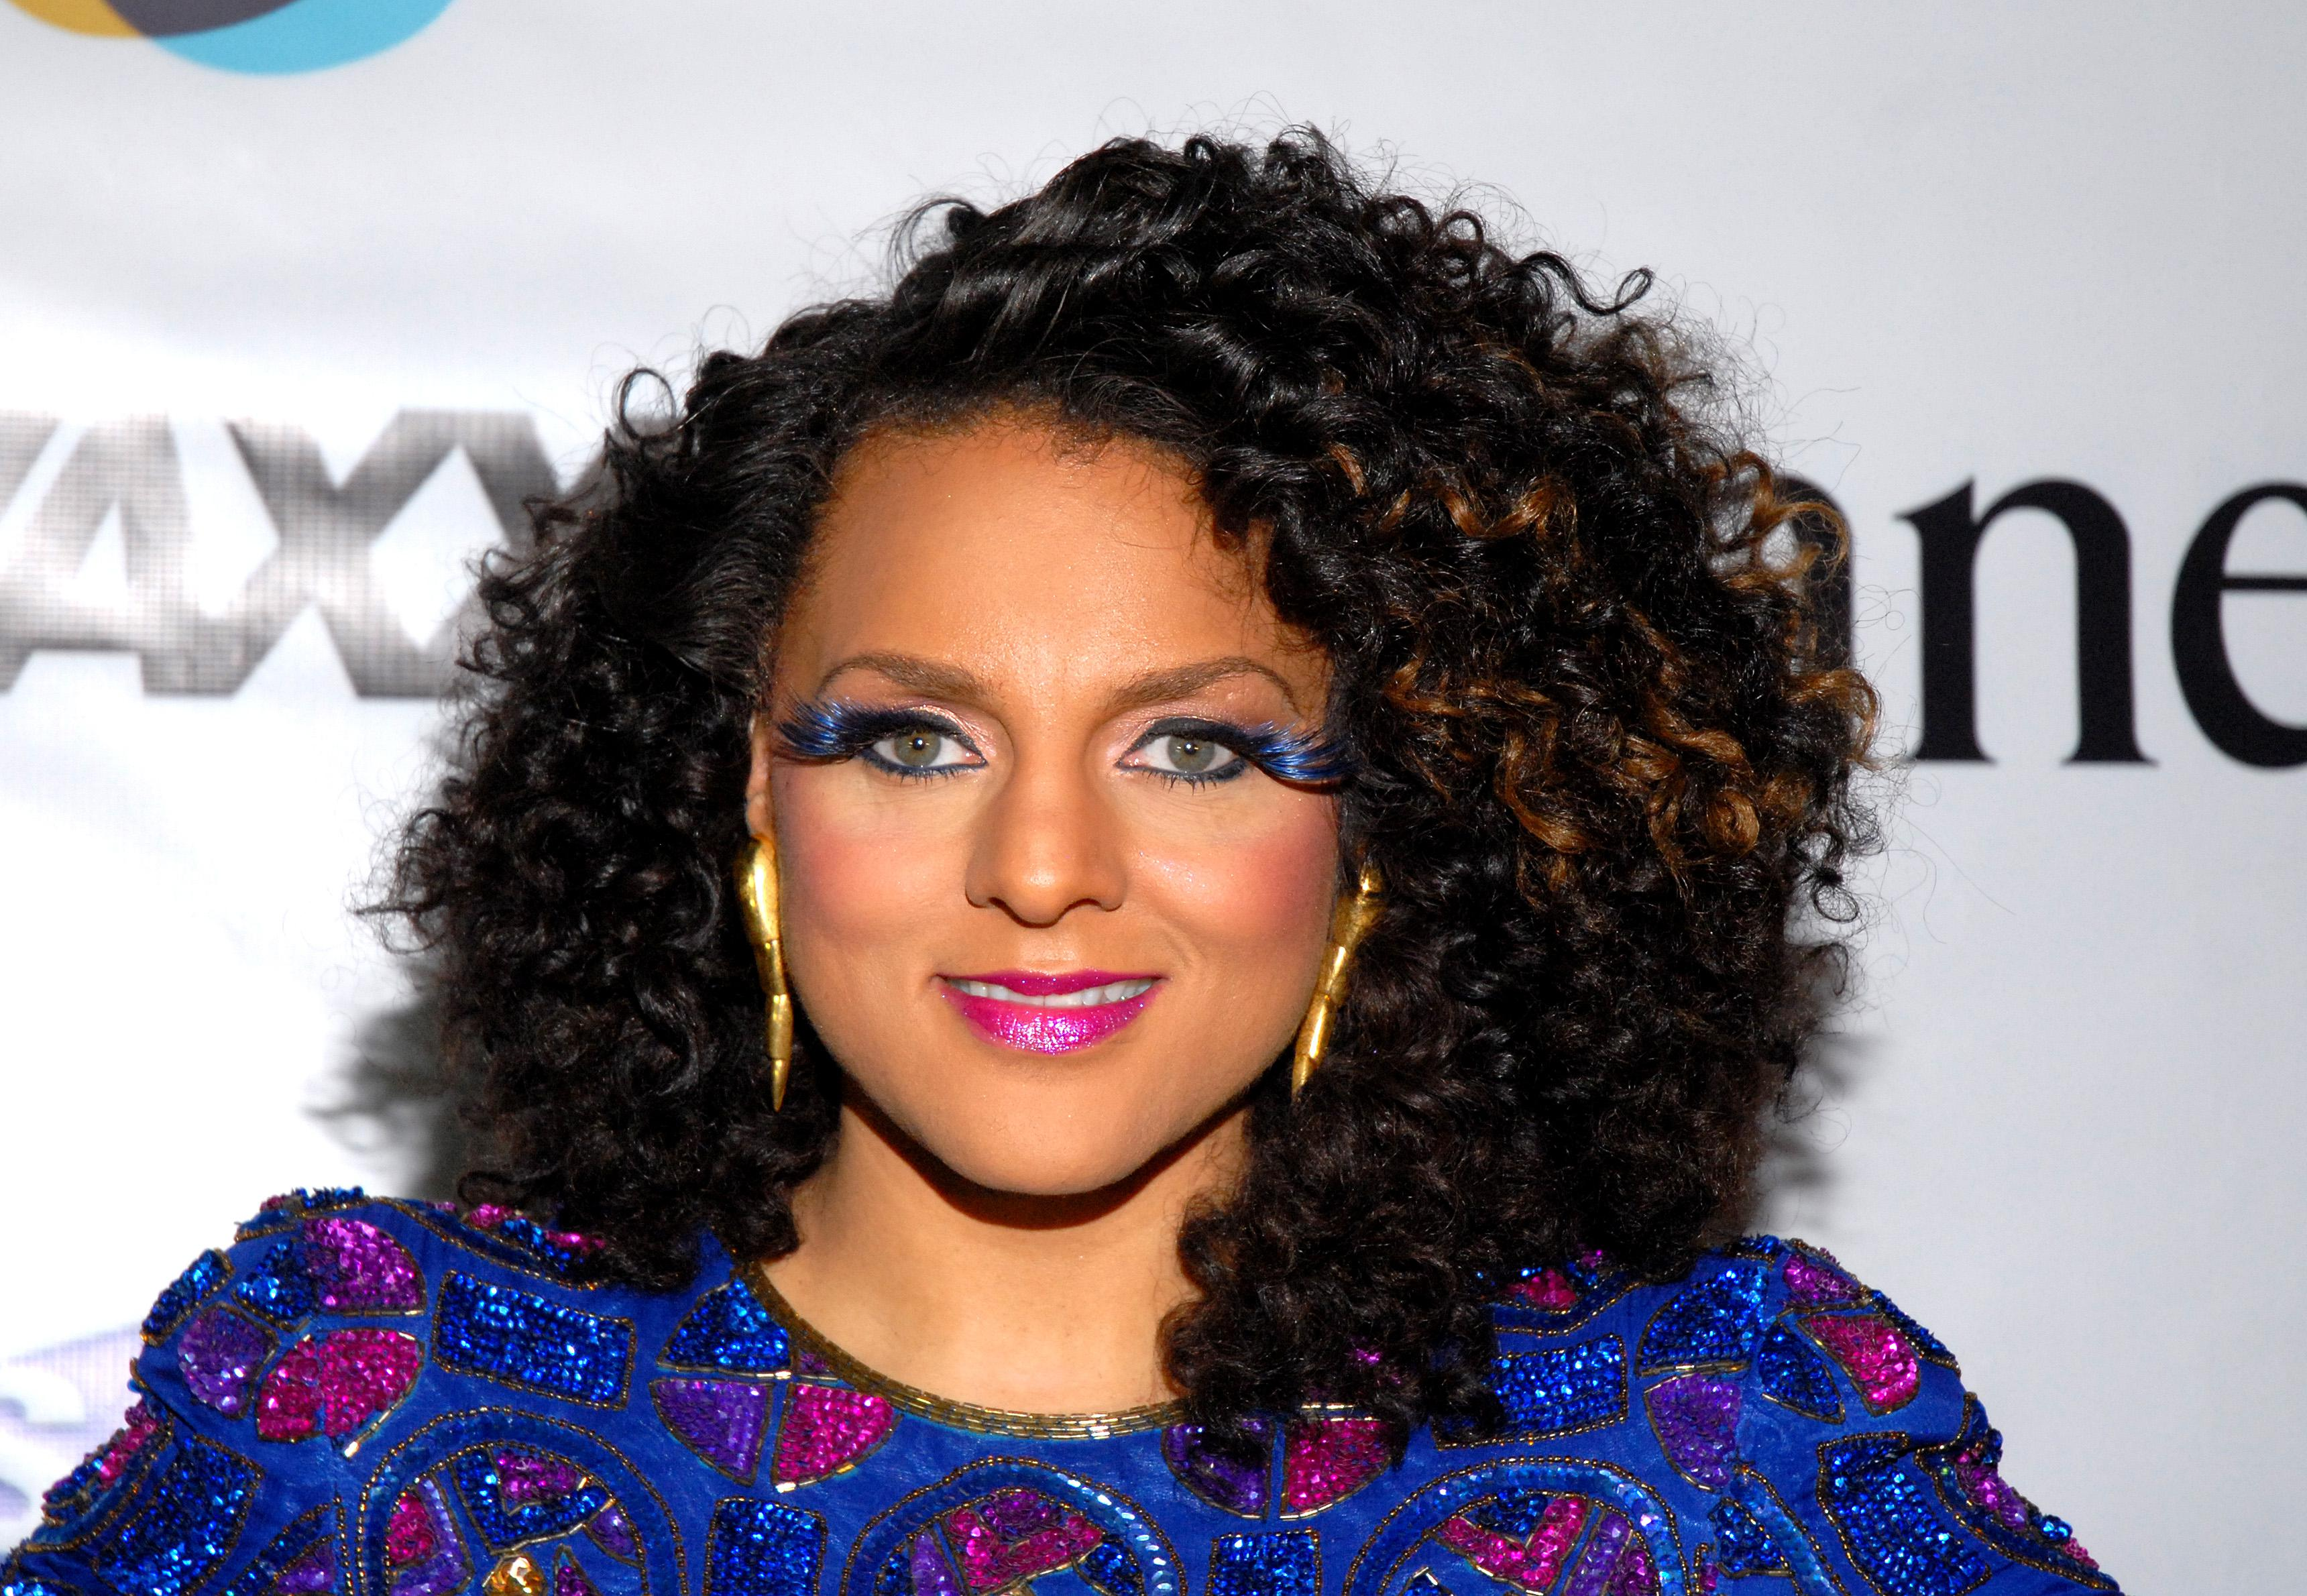 Marsha Ambrosius's 'Late Nights & Early Mornings' Album Release Party